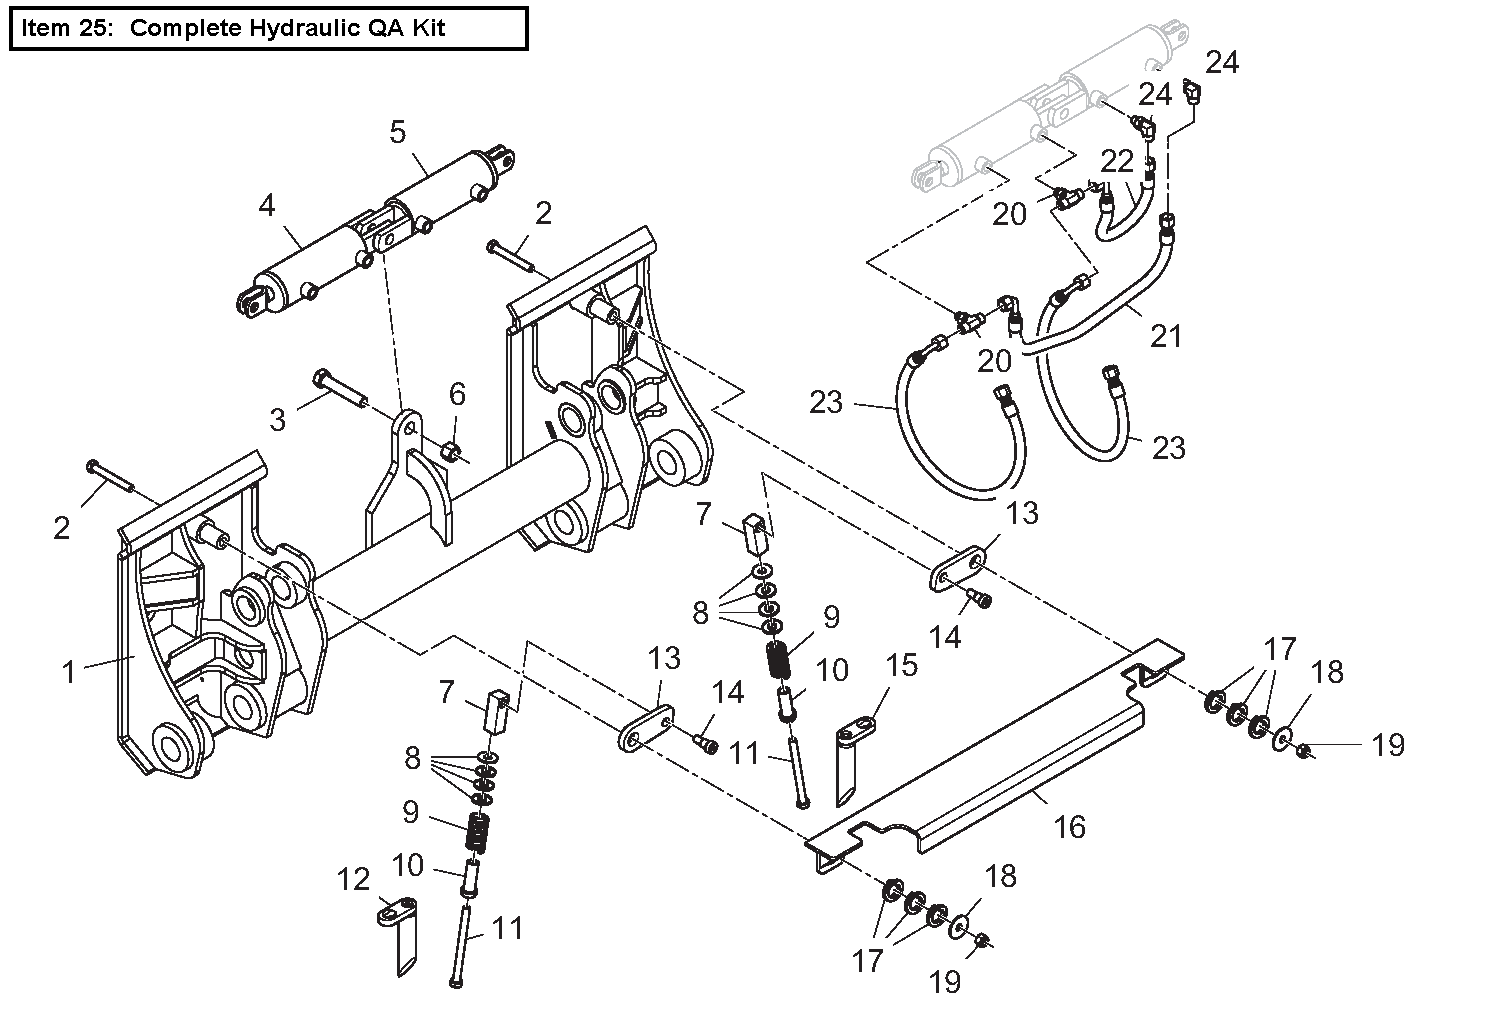 Diagram 8-3A Quick Attach Mounting Plate - Hydraulic